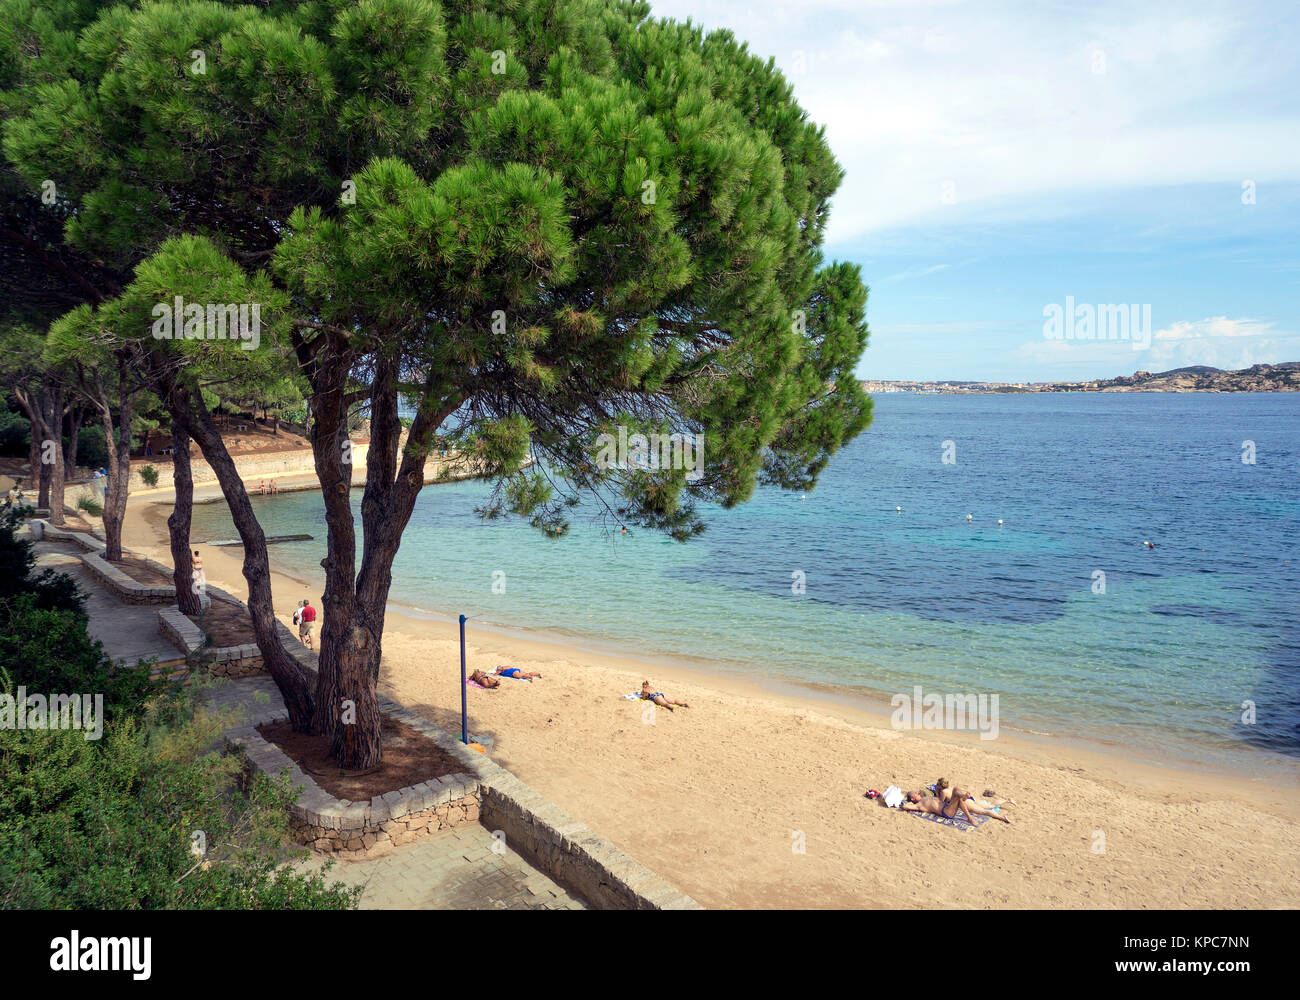 Beach at Palau, Costa Smeralda, Sardinia, Italy, Mediterranean  sea, Europe - Stock Image